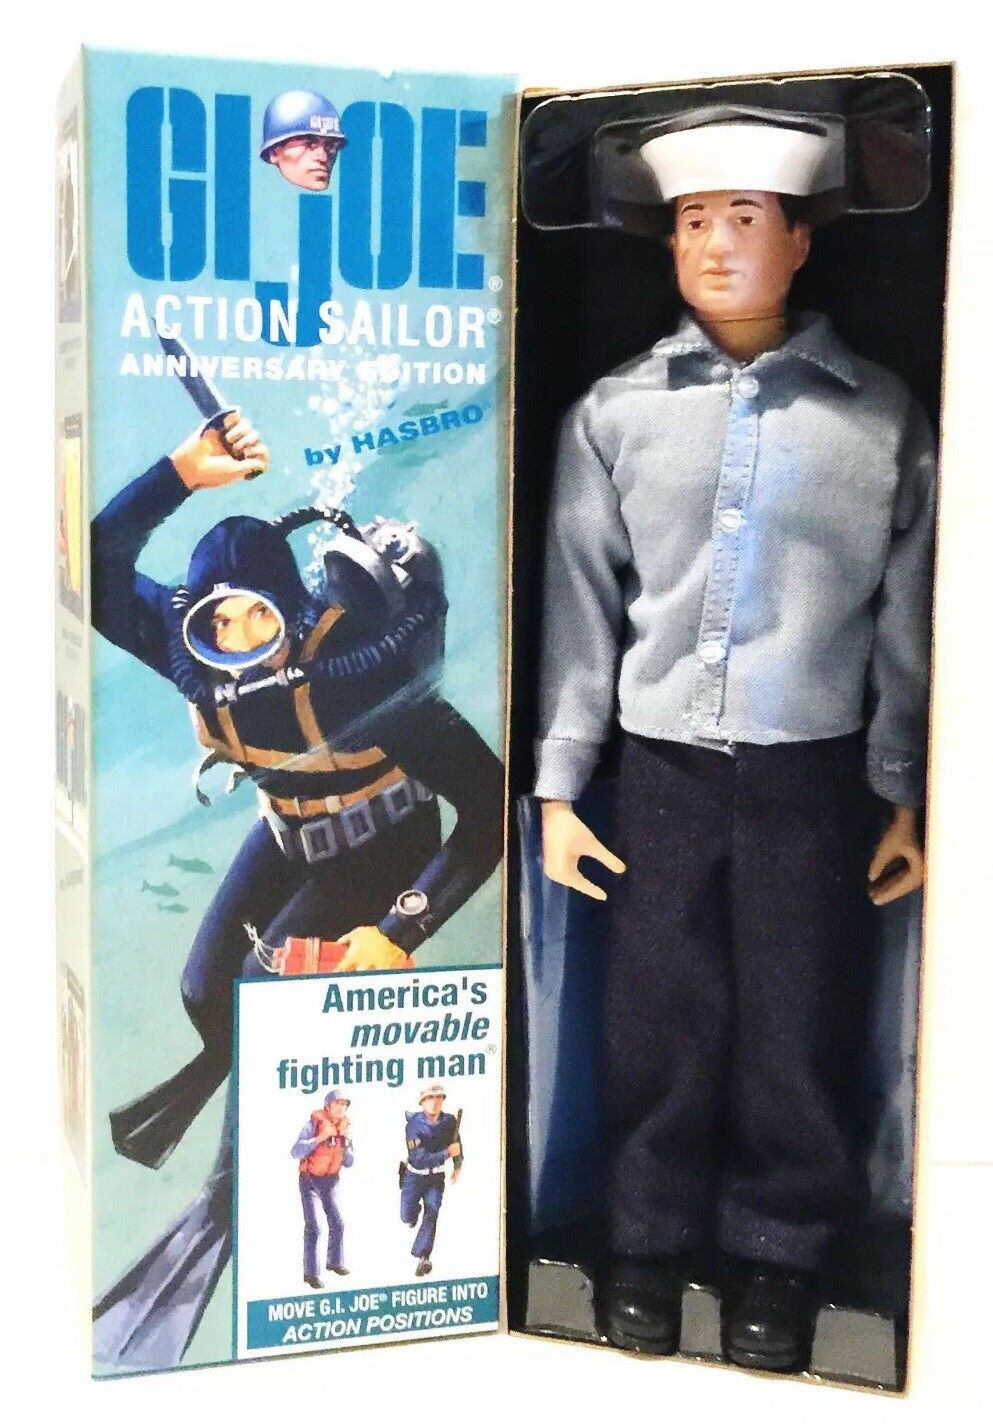 BRAND NEW GI JOE AMERICA'S ACTION SAILOR ANNIVERSARY EDITION TIMELESS MINT